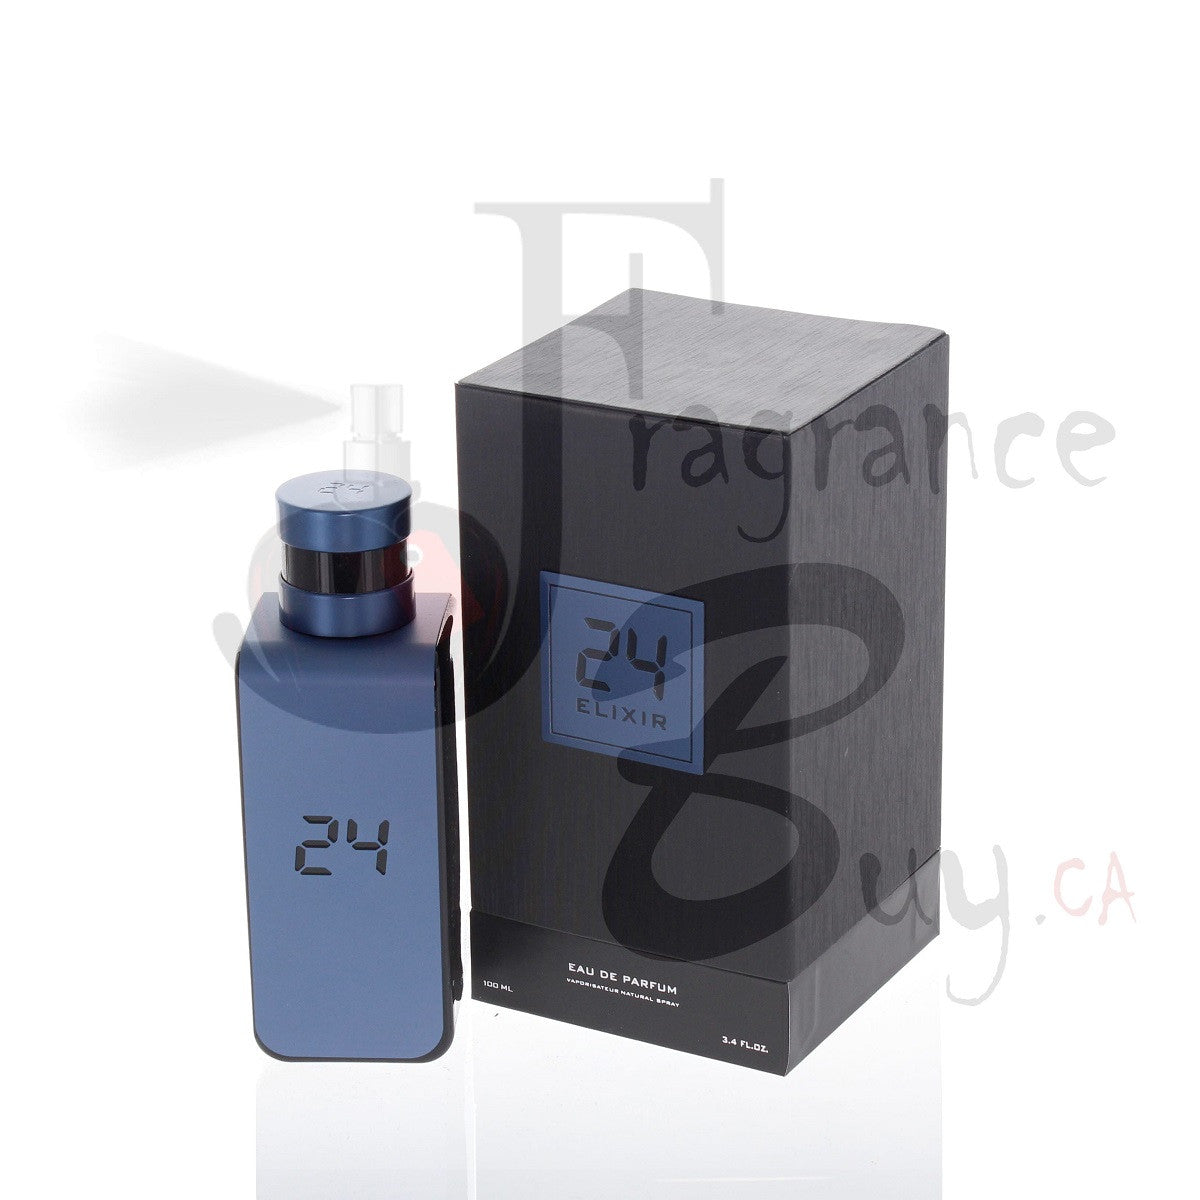 24 Elixir Azur For Man/Woman